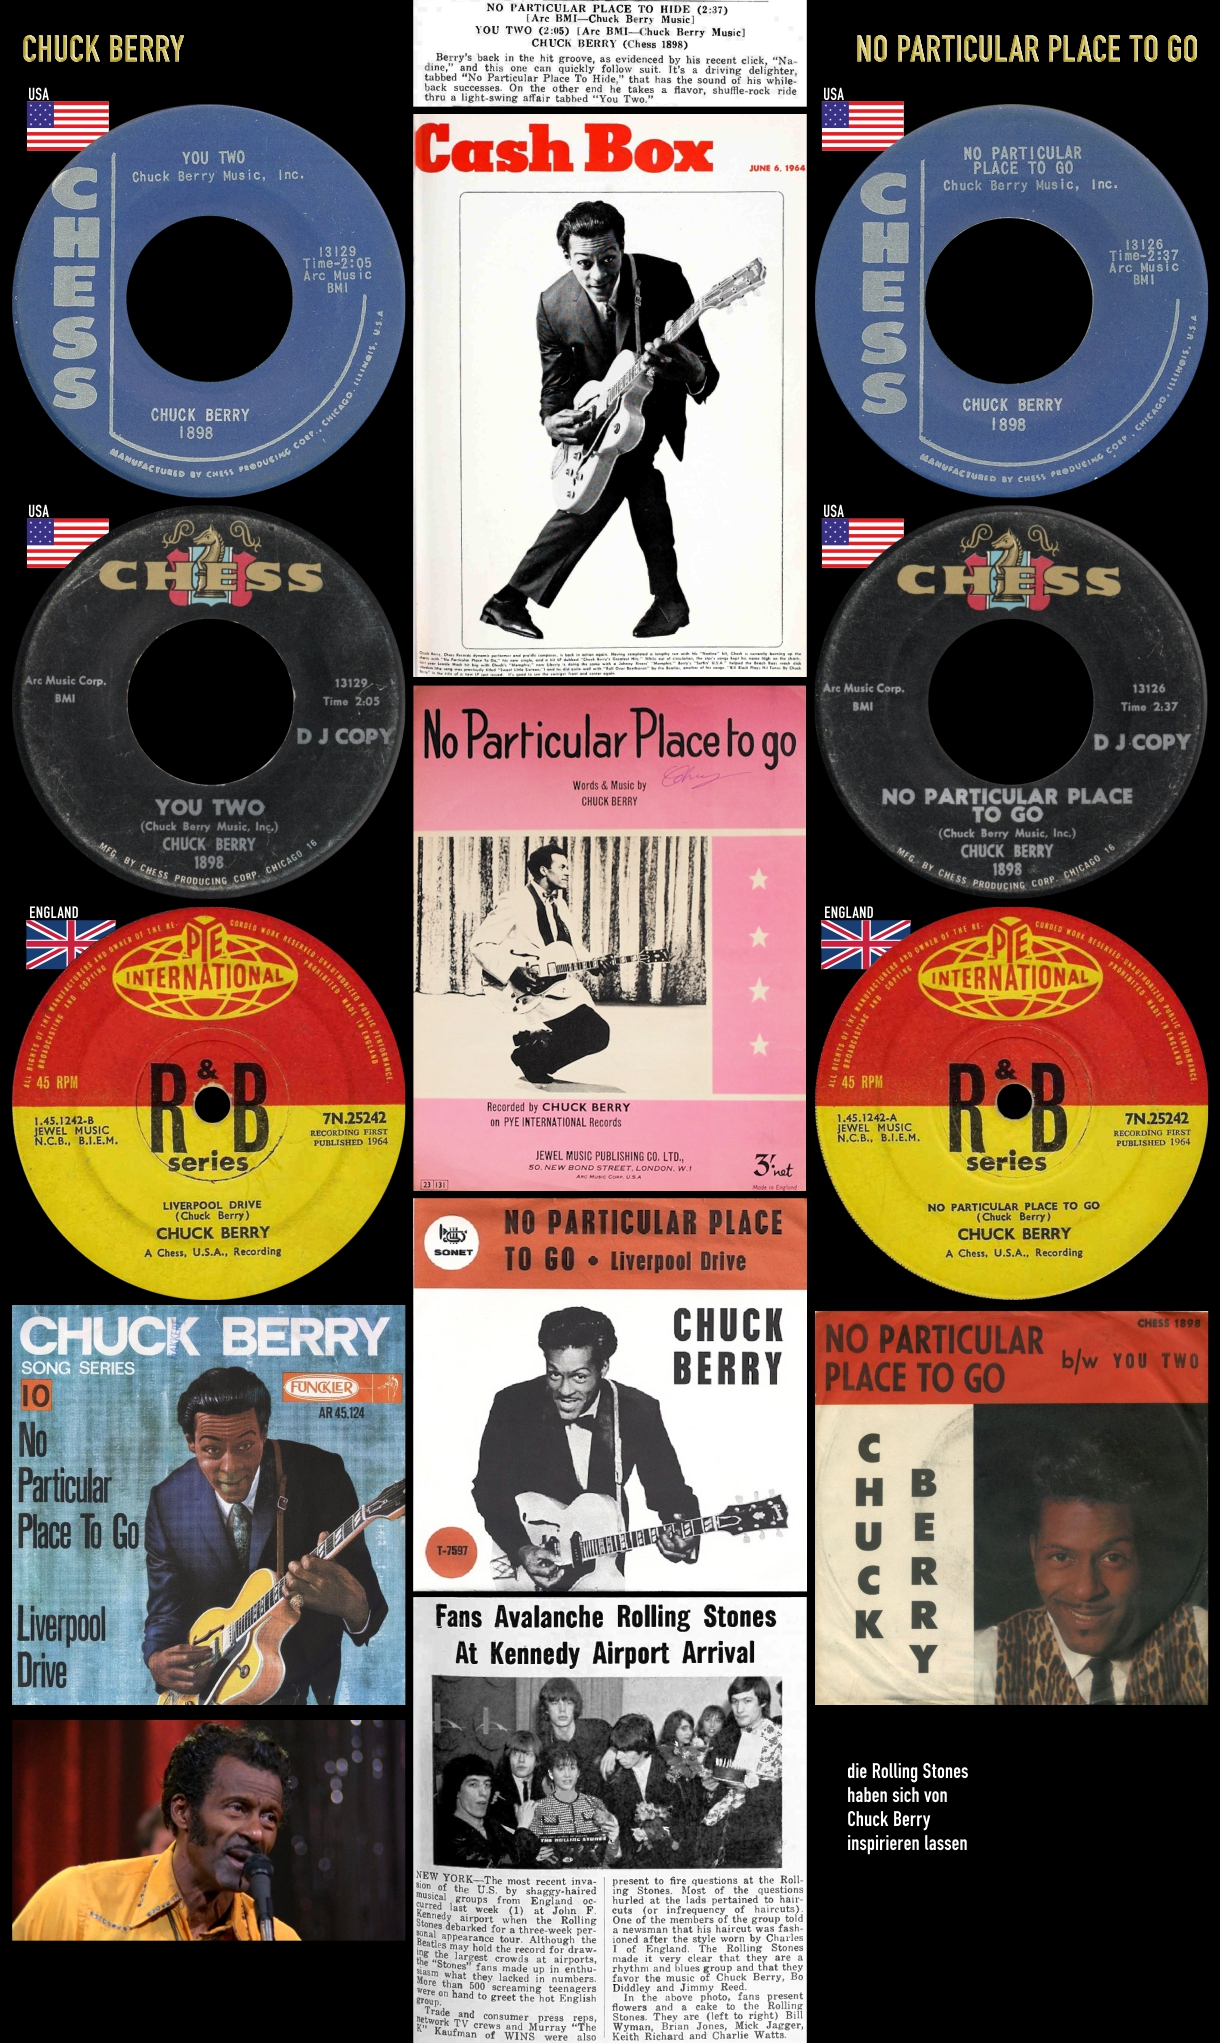 640523_Chuck Berry_No Particular Place To Go